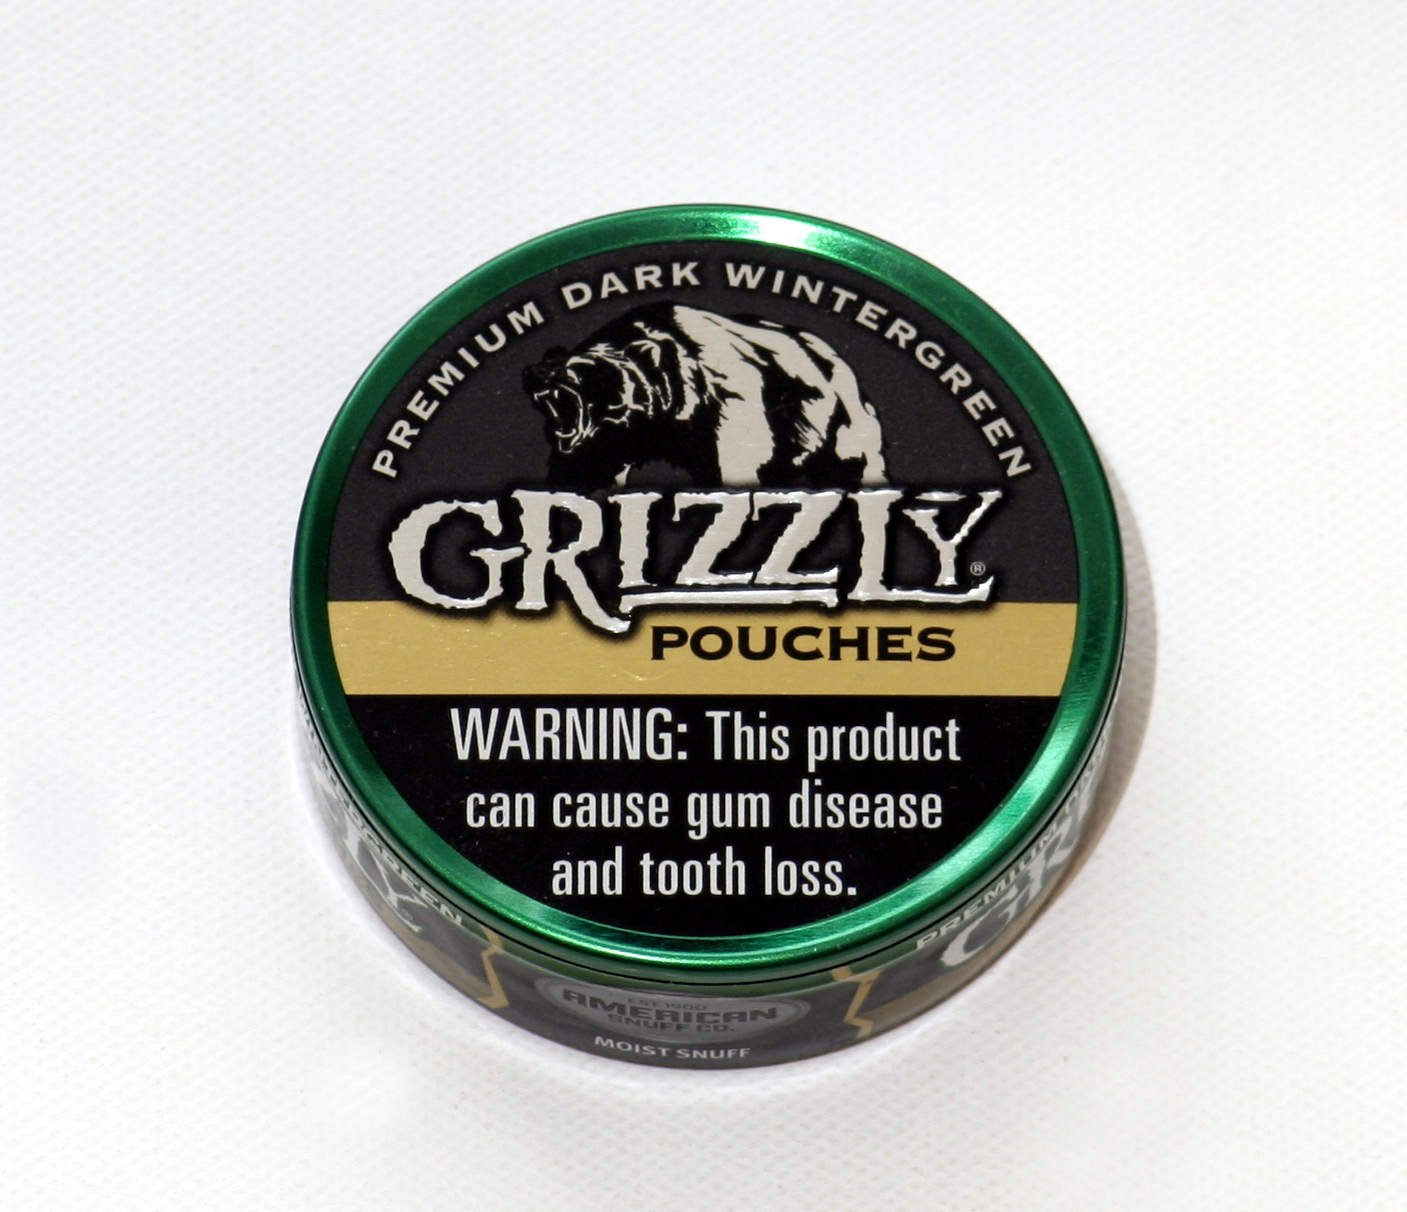 Grizzly wintergreen tobacco coupons